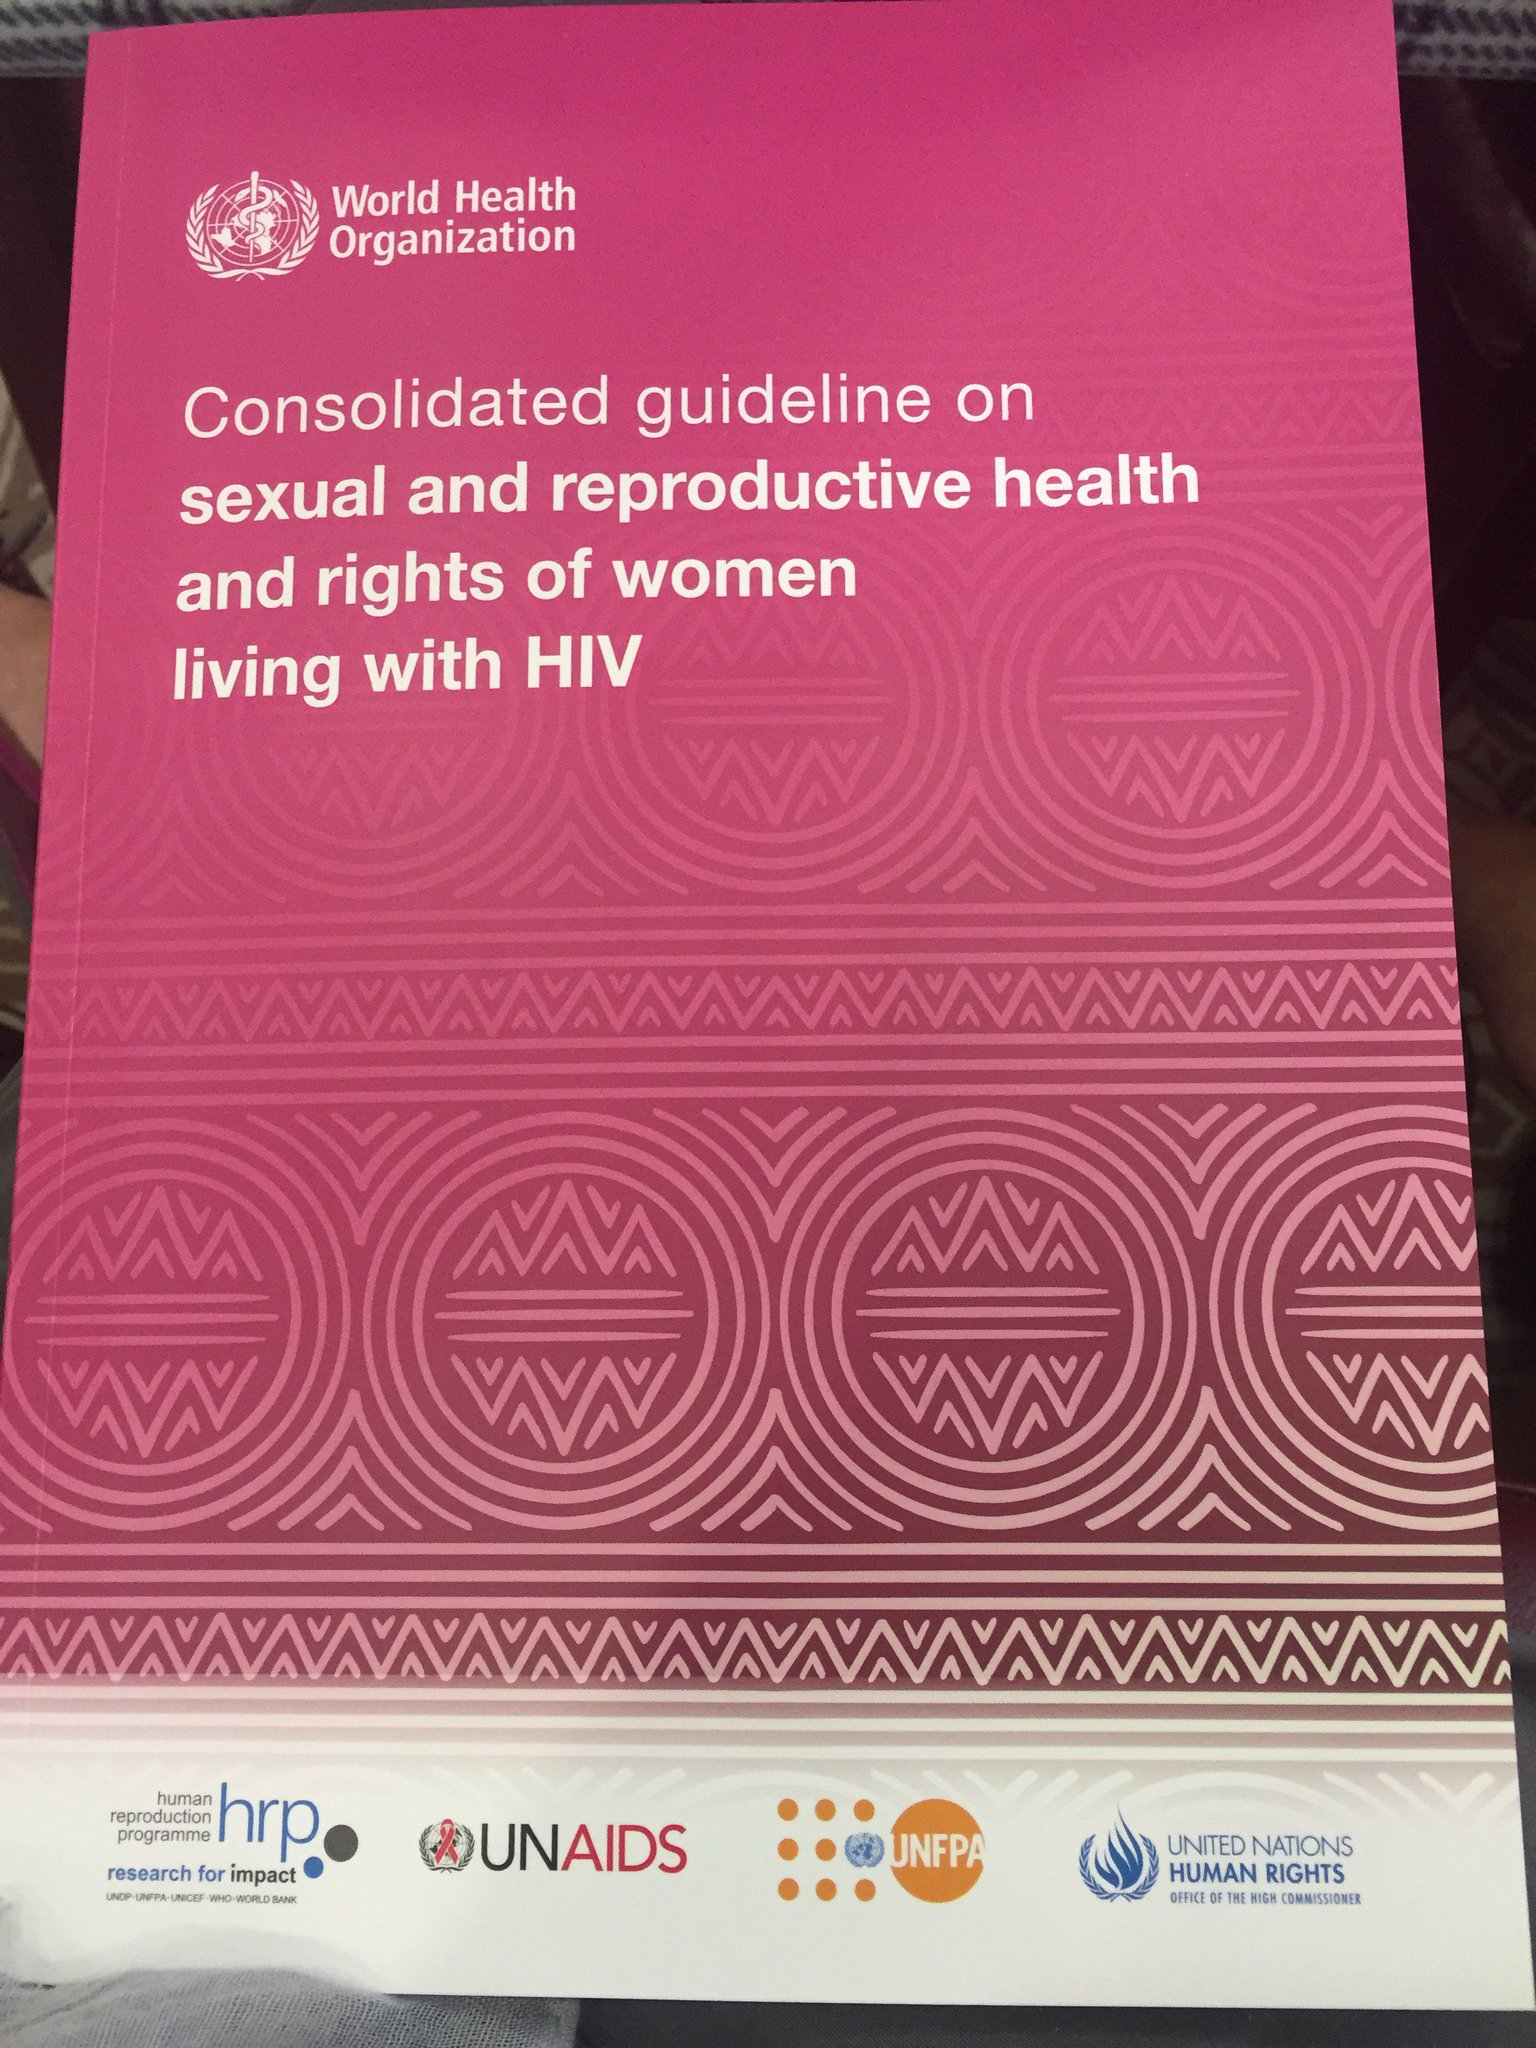 #womenHIVSRHR @RCObsGyn @SalamanderTrust attending the launch of these vital  guidelines developed by women for women living with HIV https://t.co/lUCwk9lRH2